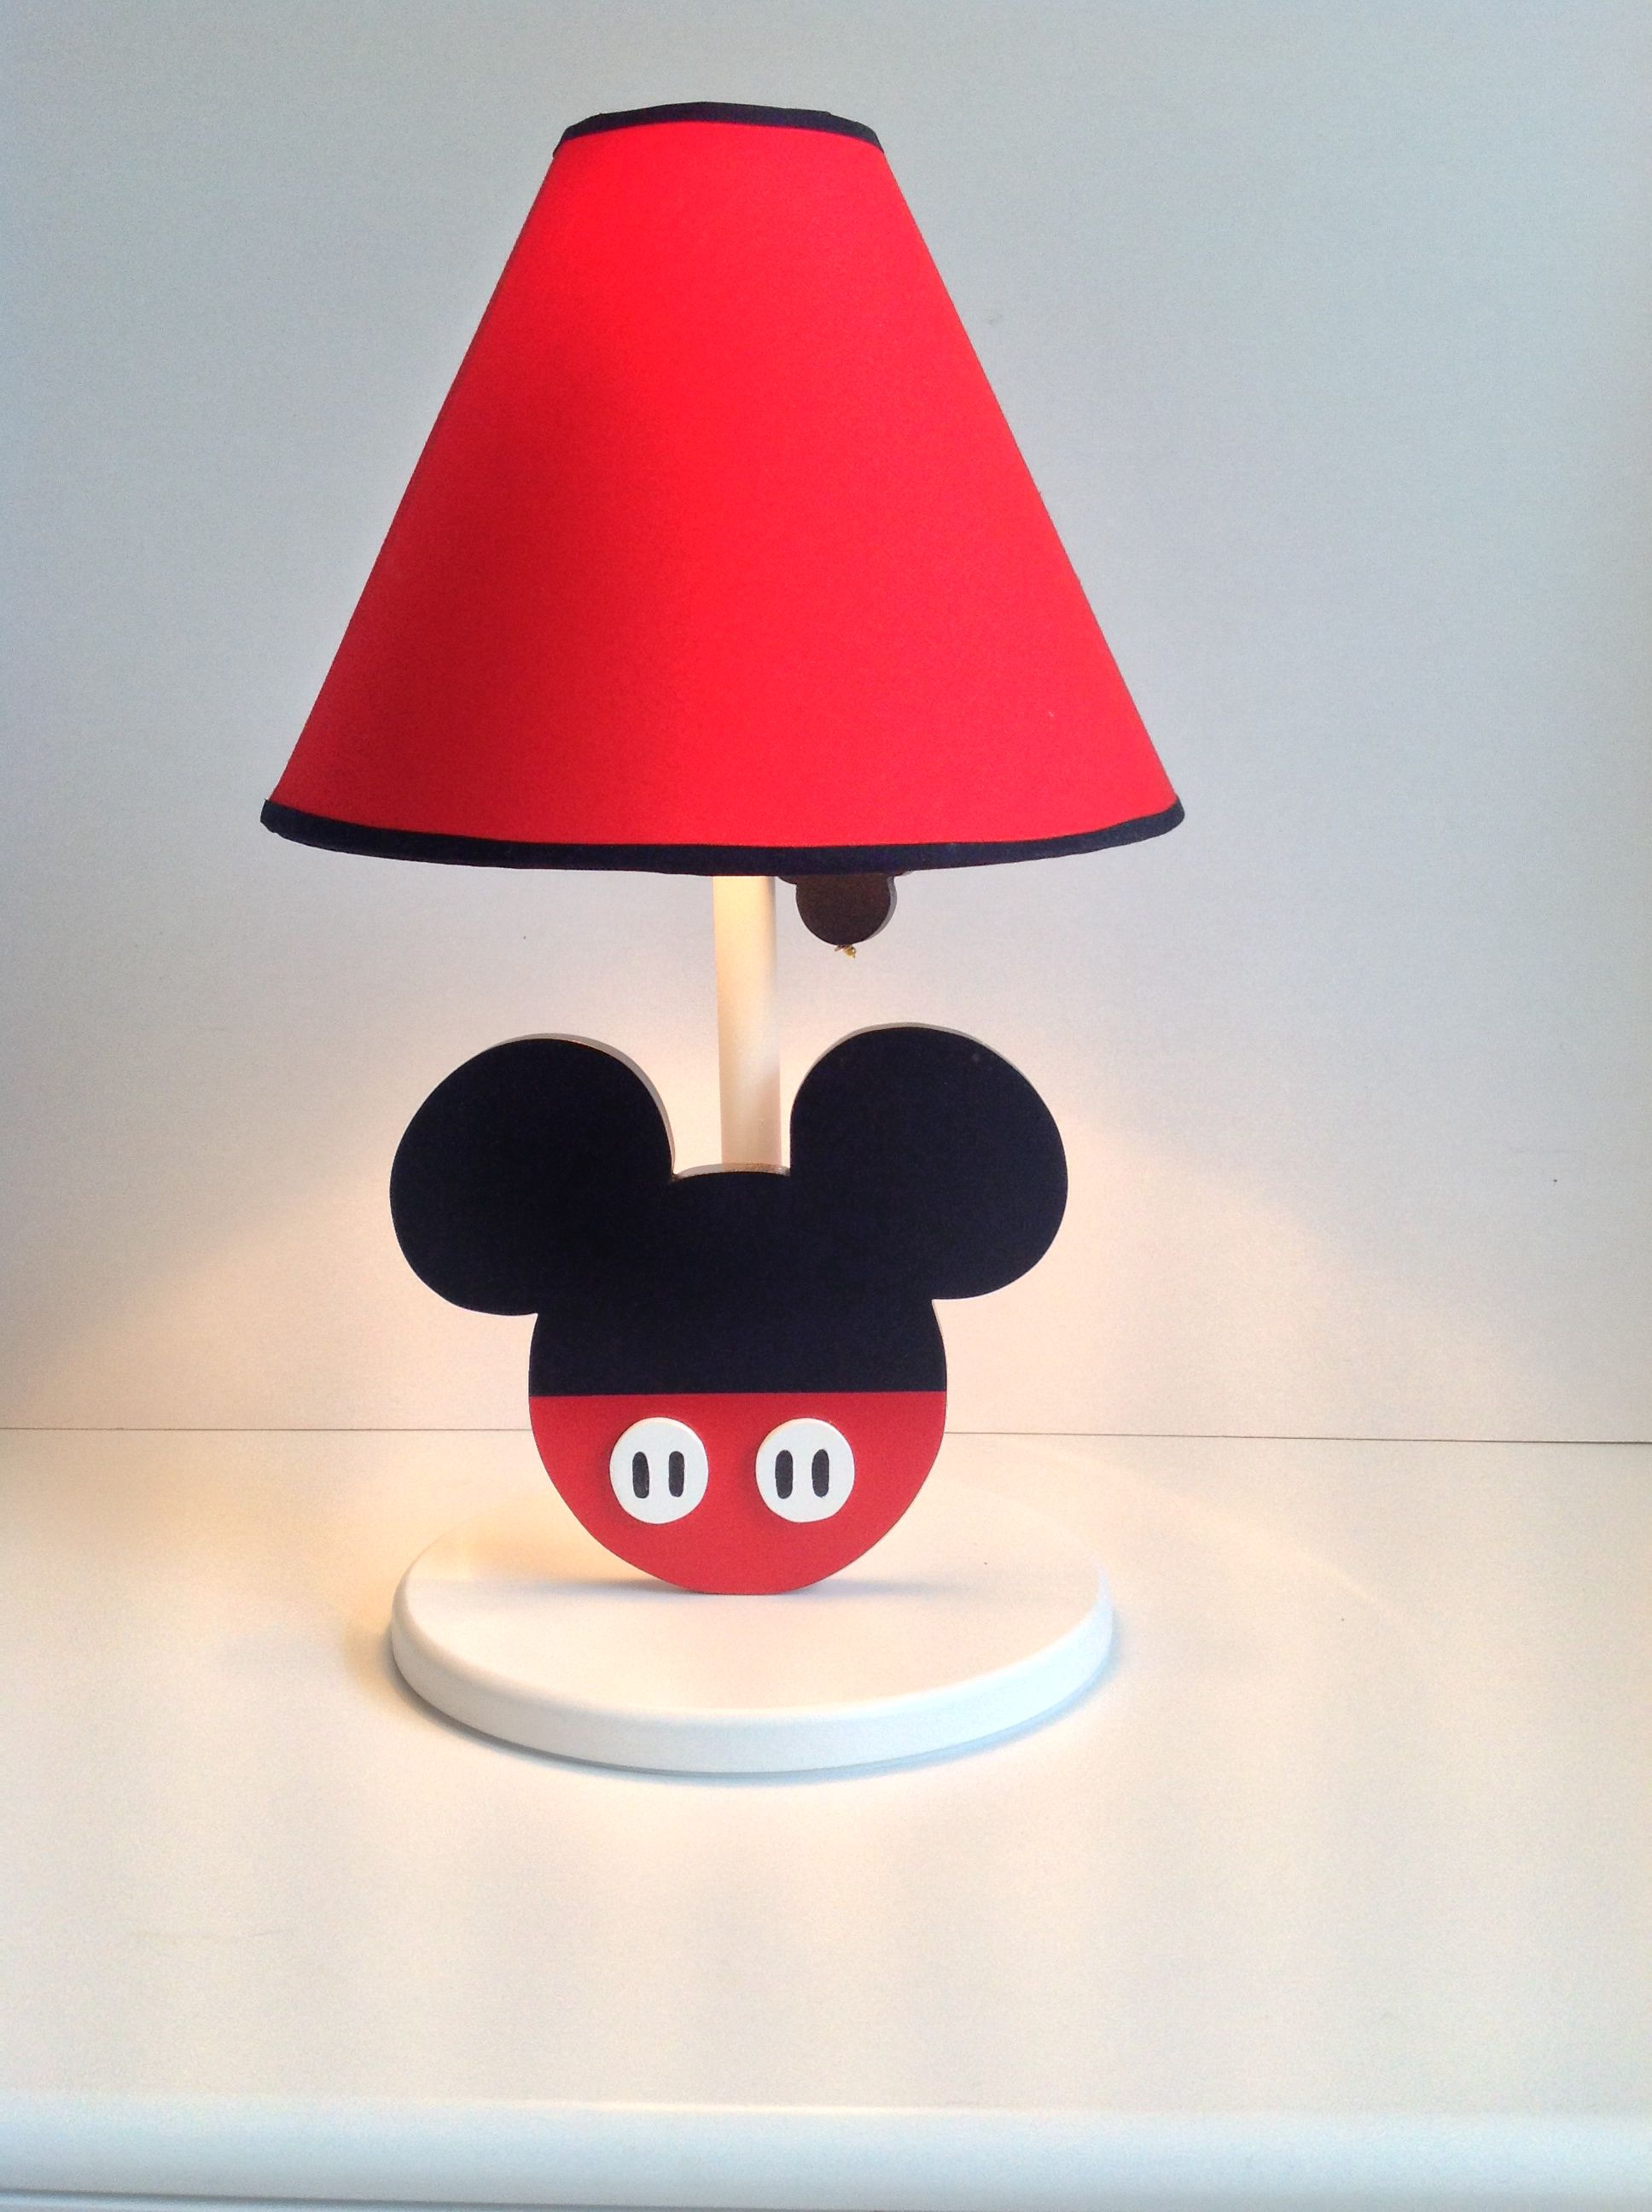 Mickey mouse disney table lamp handmade by under ten cr undertendeco mickey mouse disney table lamp handmade by under ten cr undertendecogmail aloadofball Choice Image